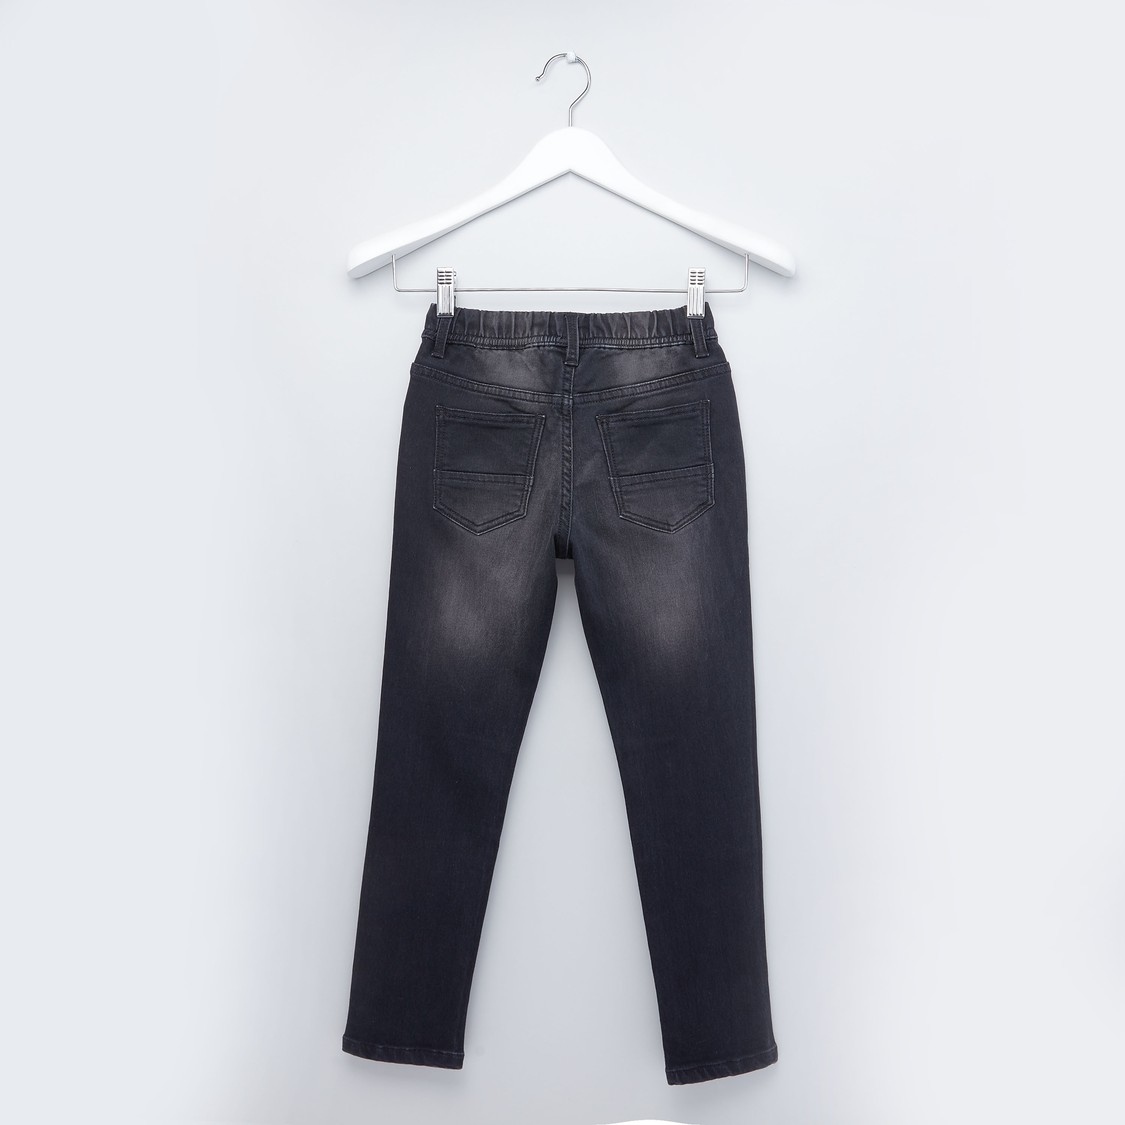 Plain Jeans with 5-Pockets and Drawstring Closure